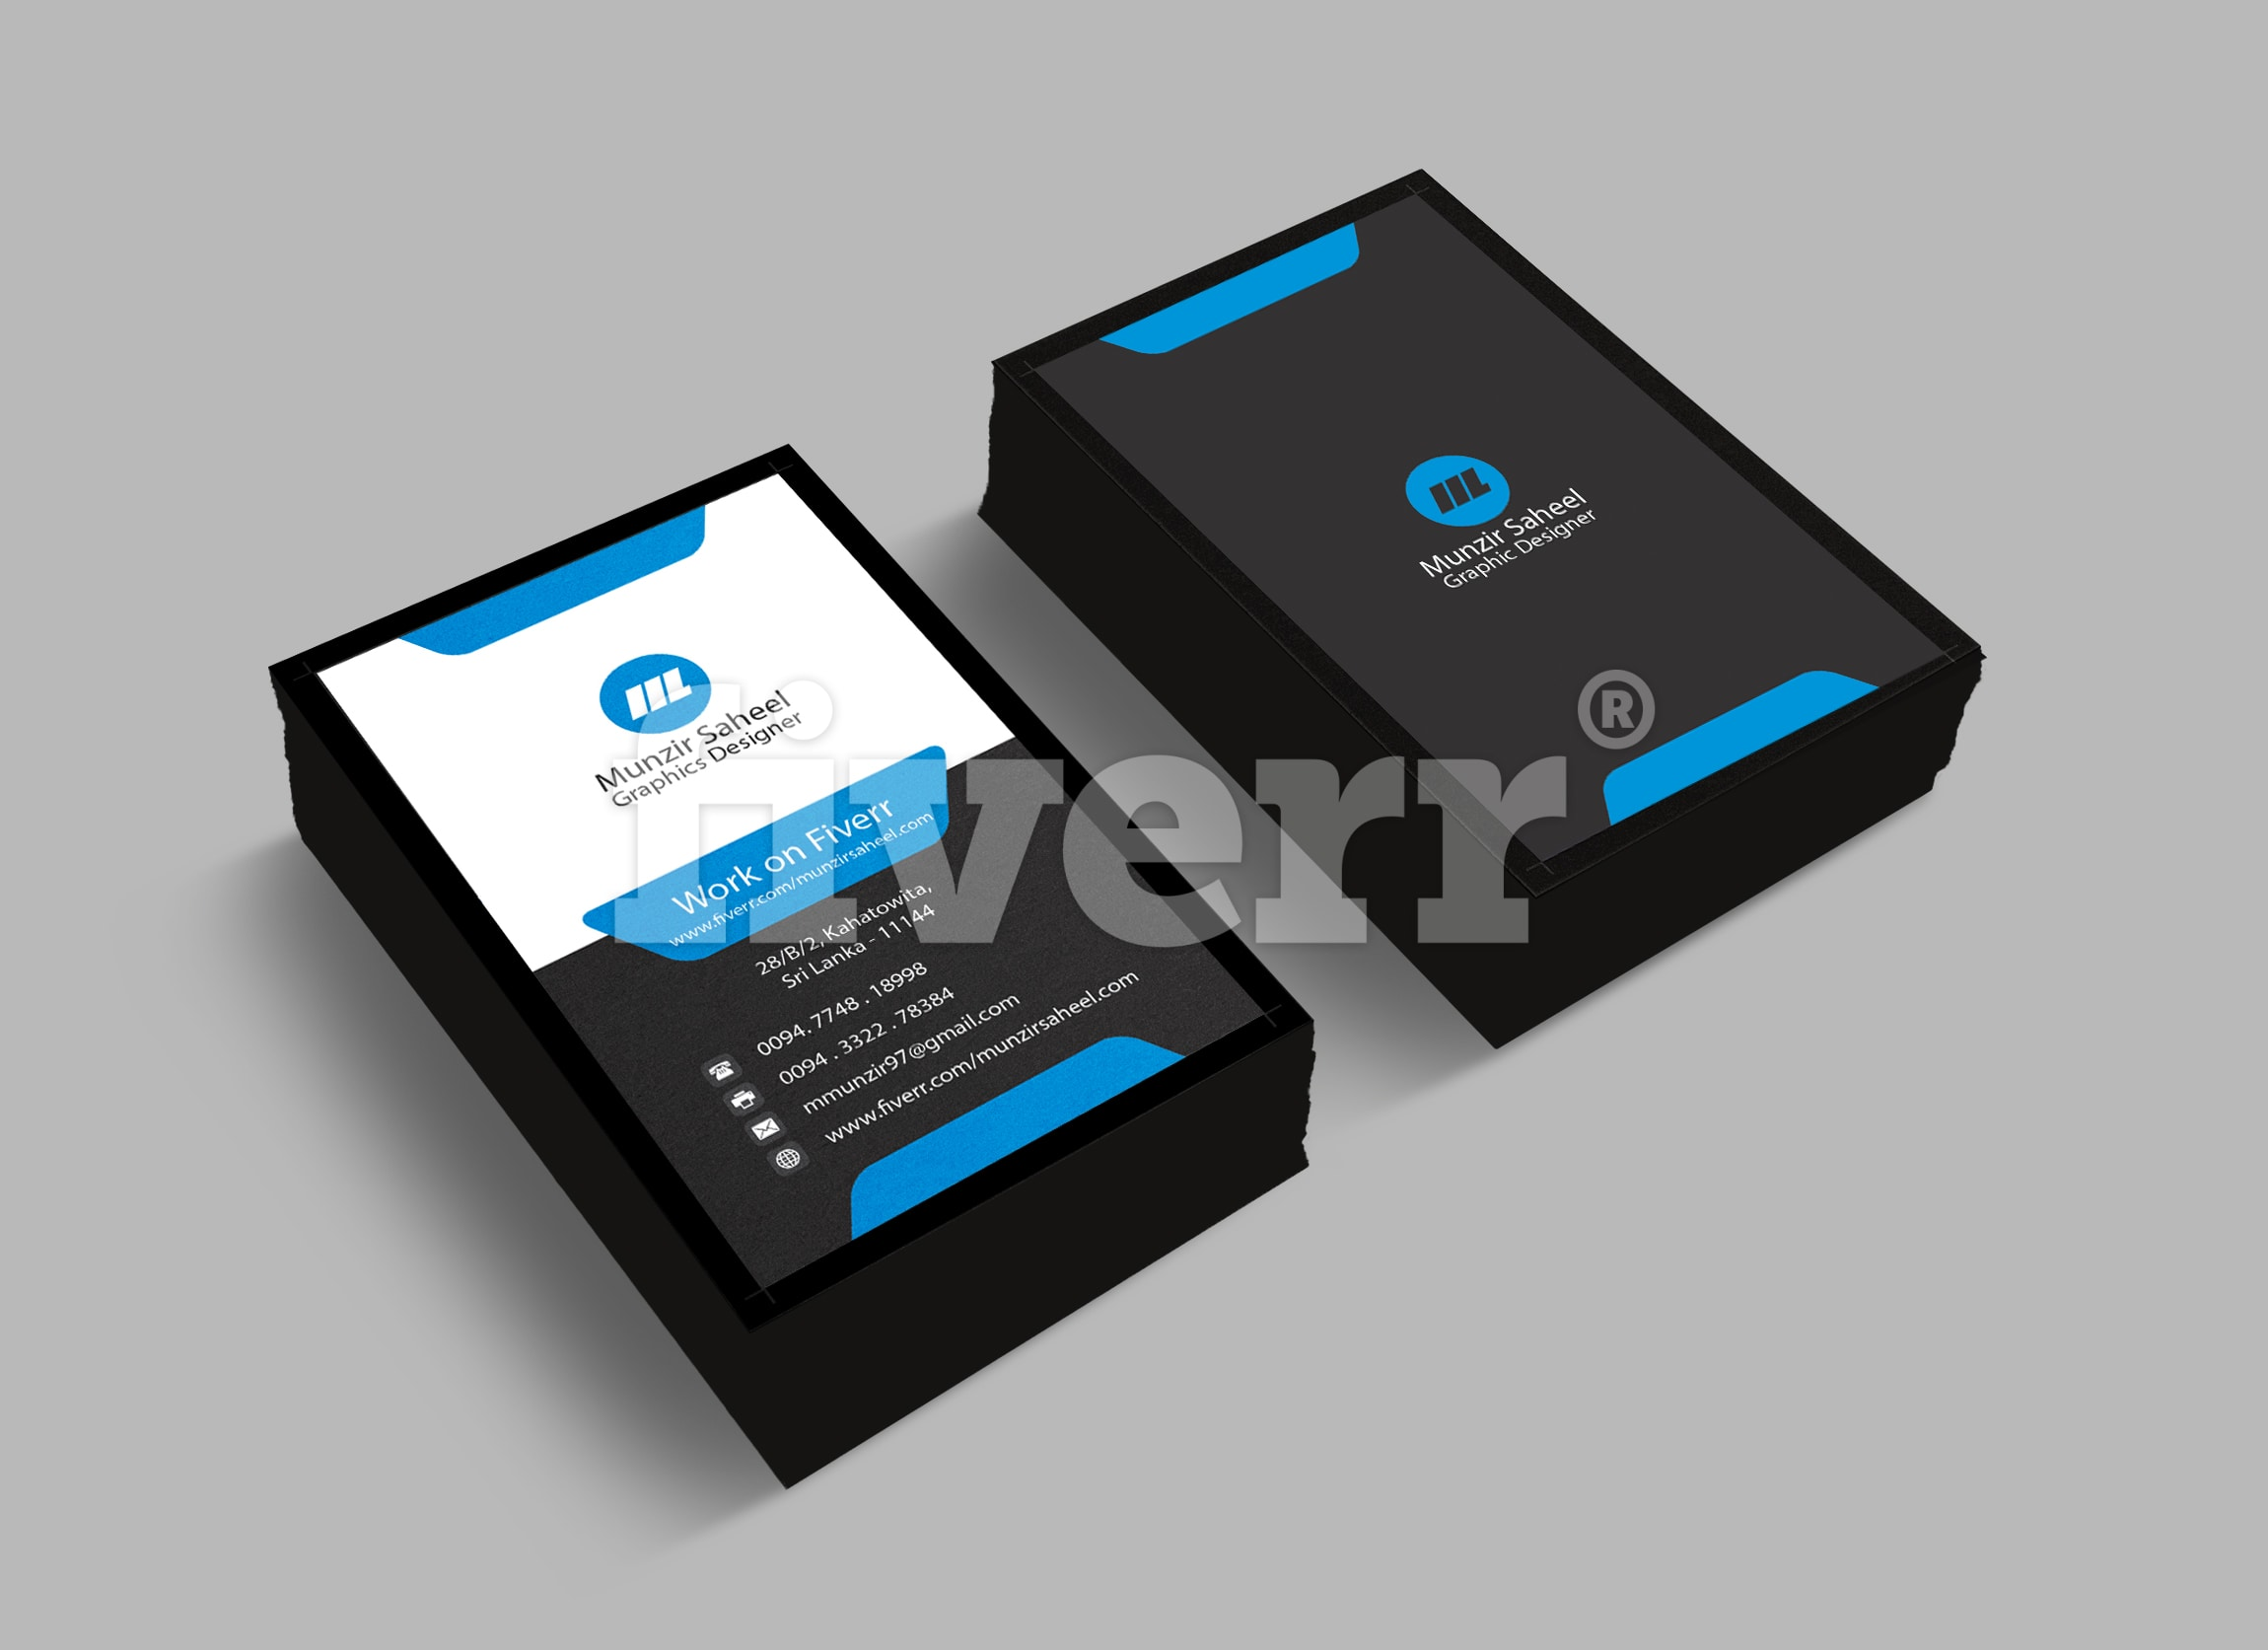 Outstanding 2 sided business card vista print ready by Munzirsaheel